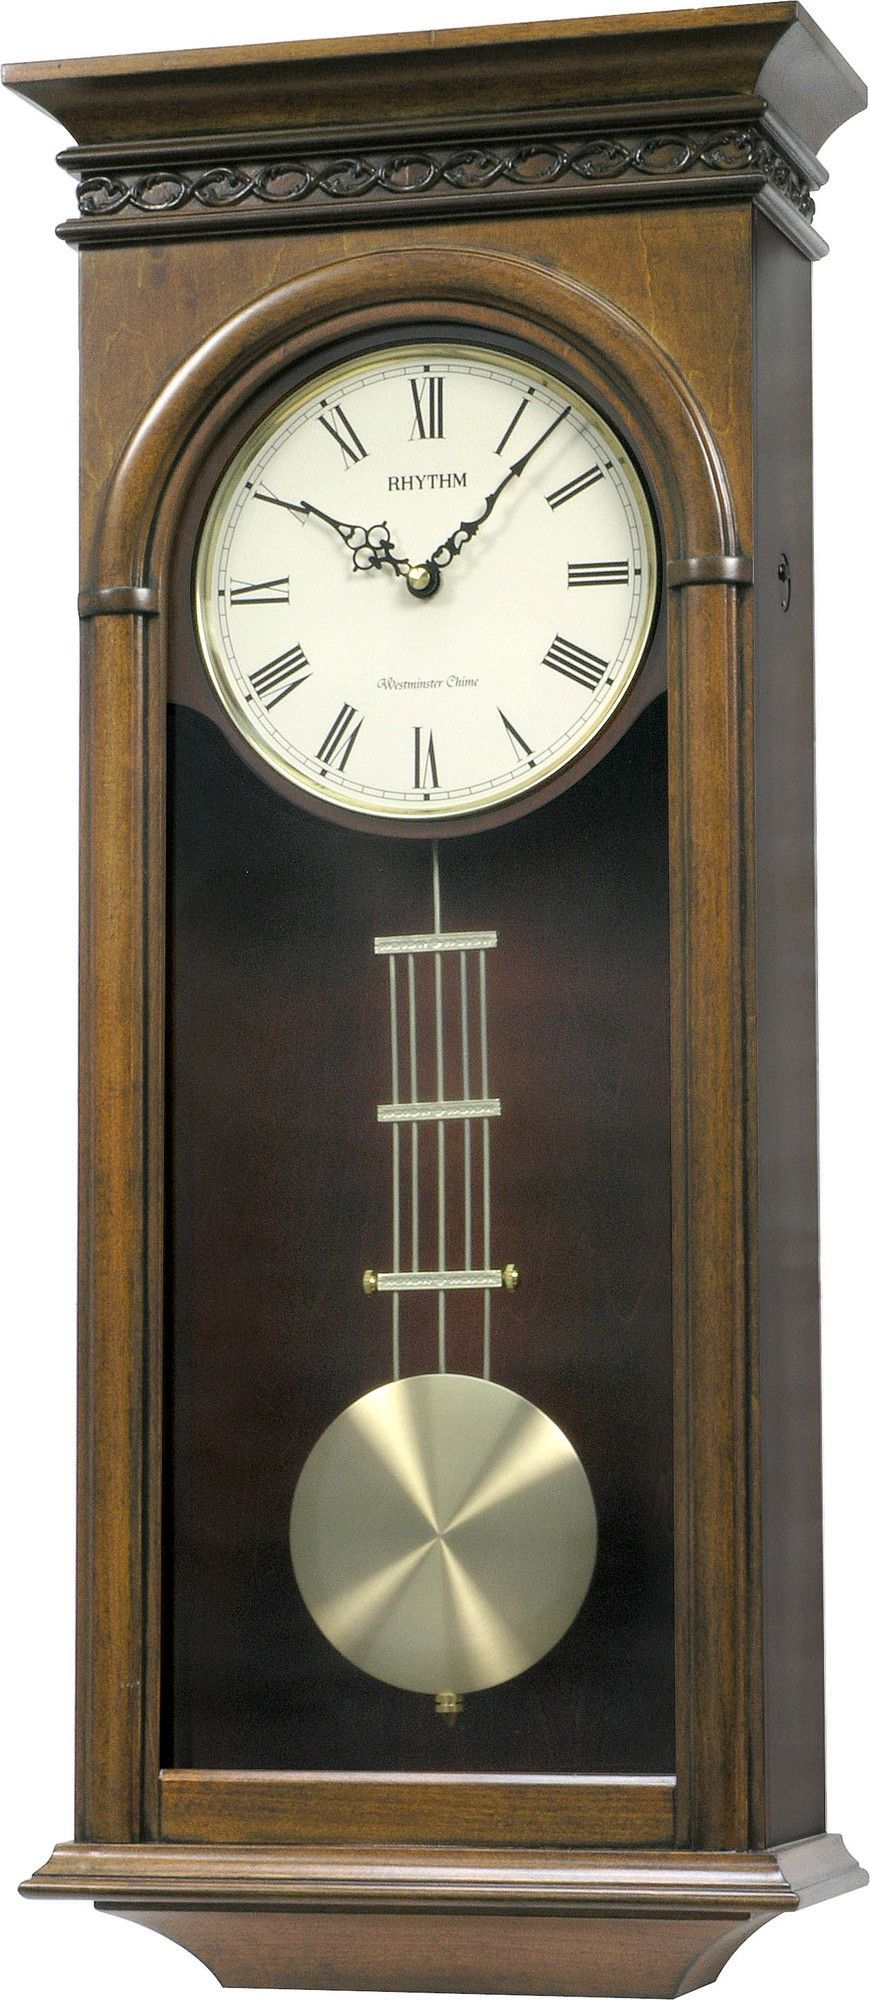 Rhythm Wsm Carlisle Wall Clock Chiming Wall Clocks Wall Clock Clock